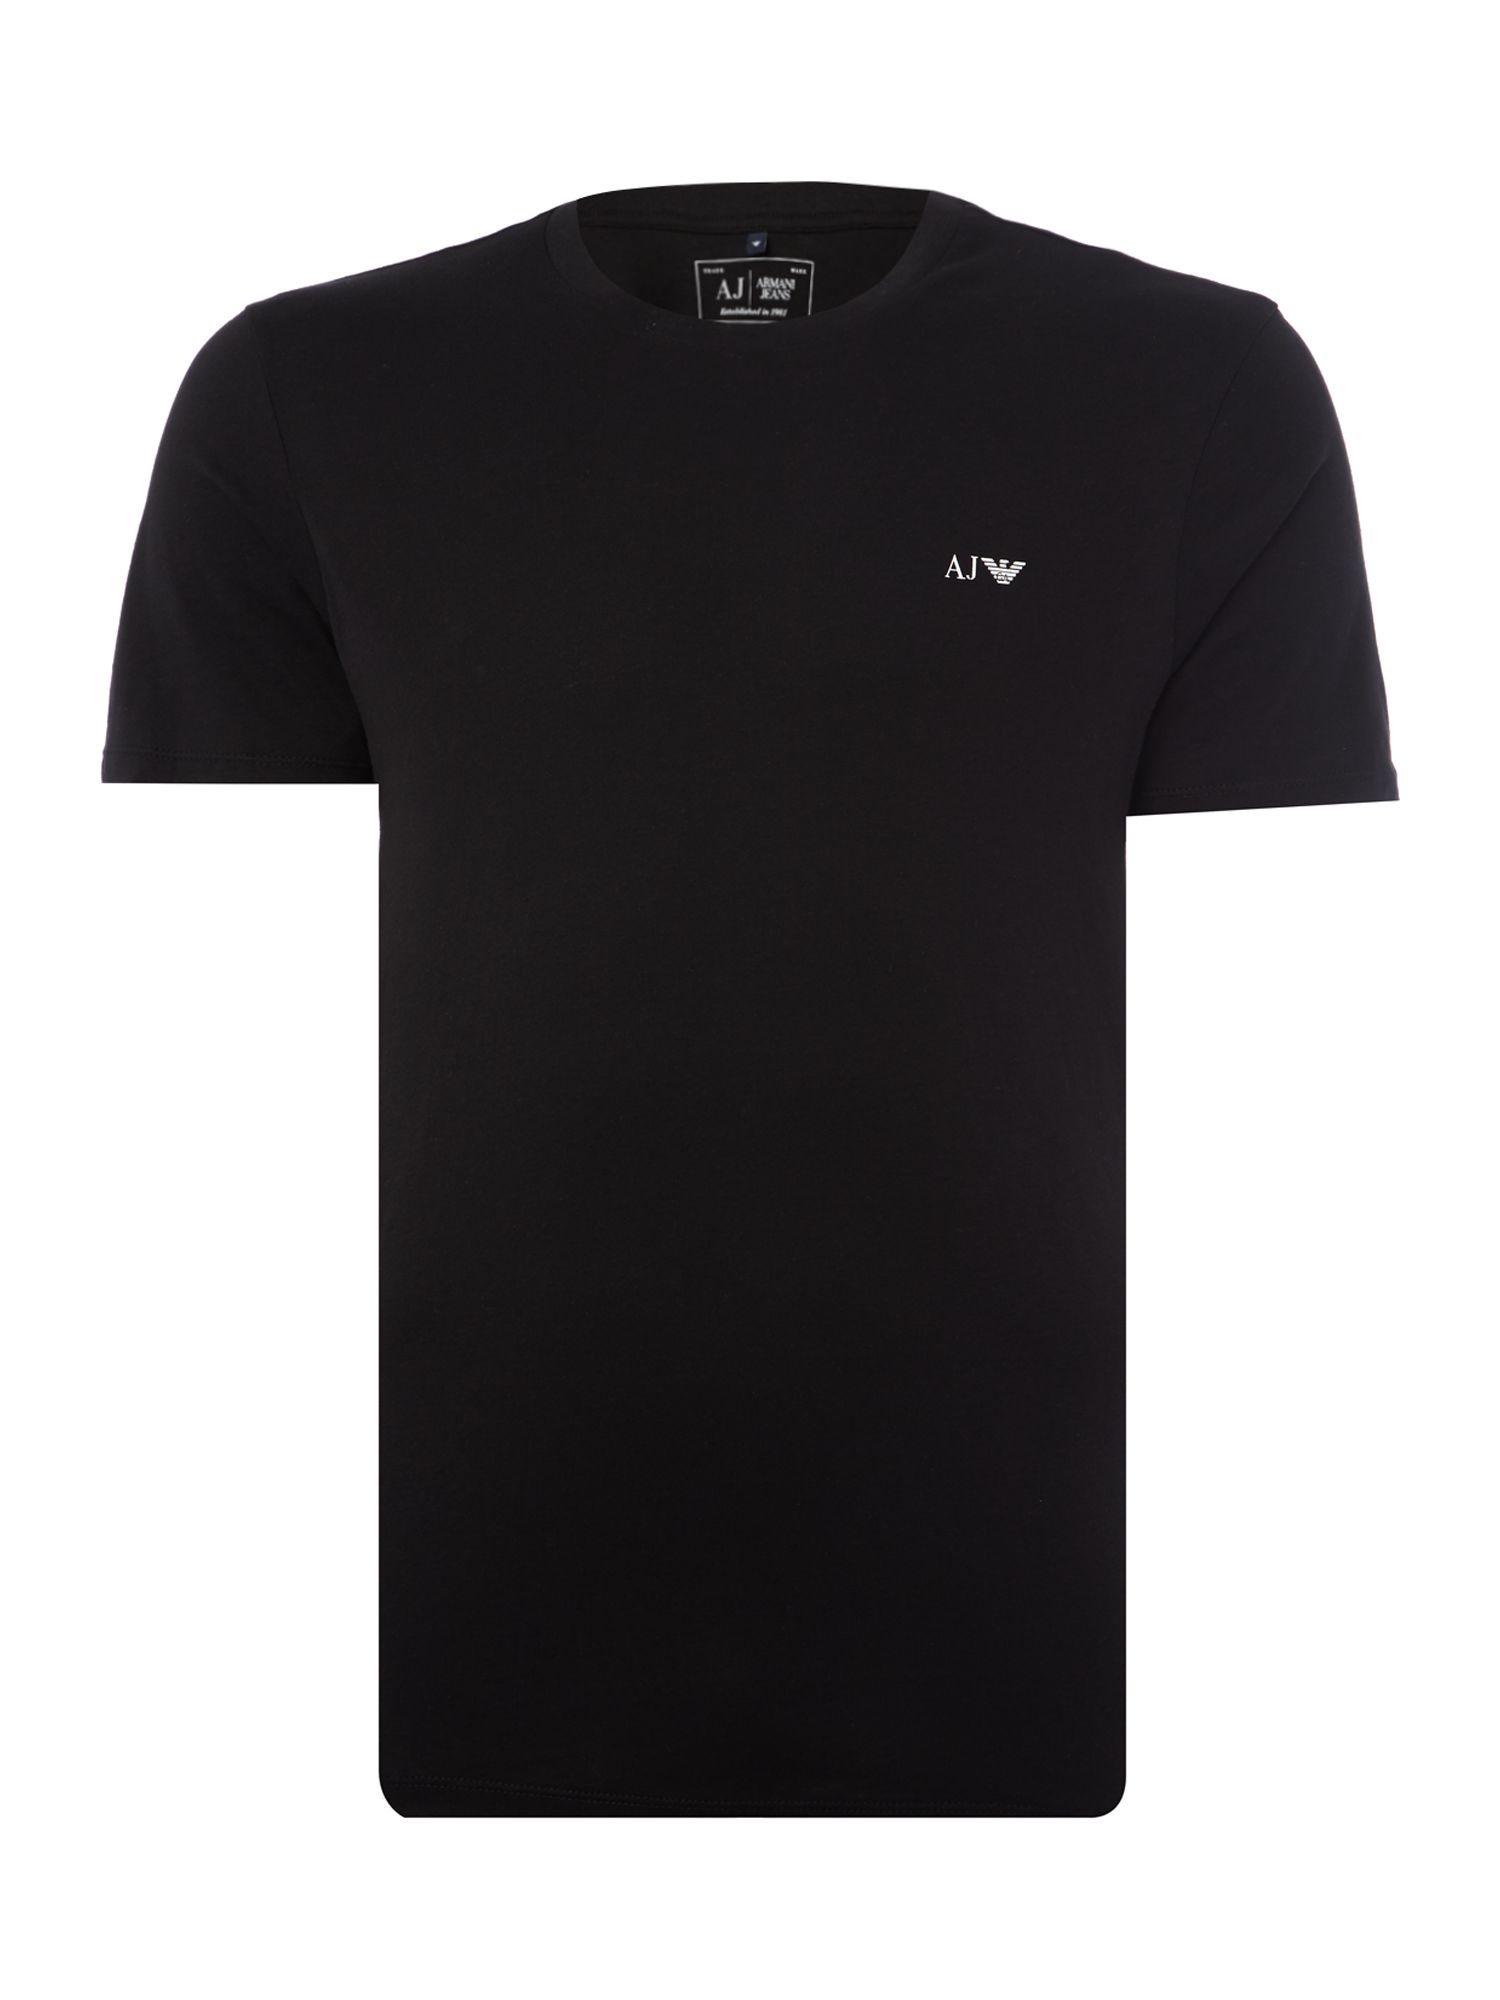 Men's Armani Jeans Regular fit crew neck t shirt 2 pack, Black